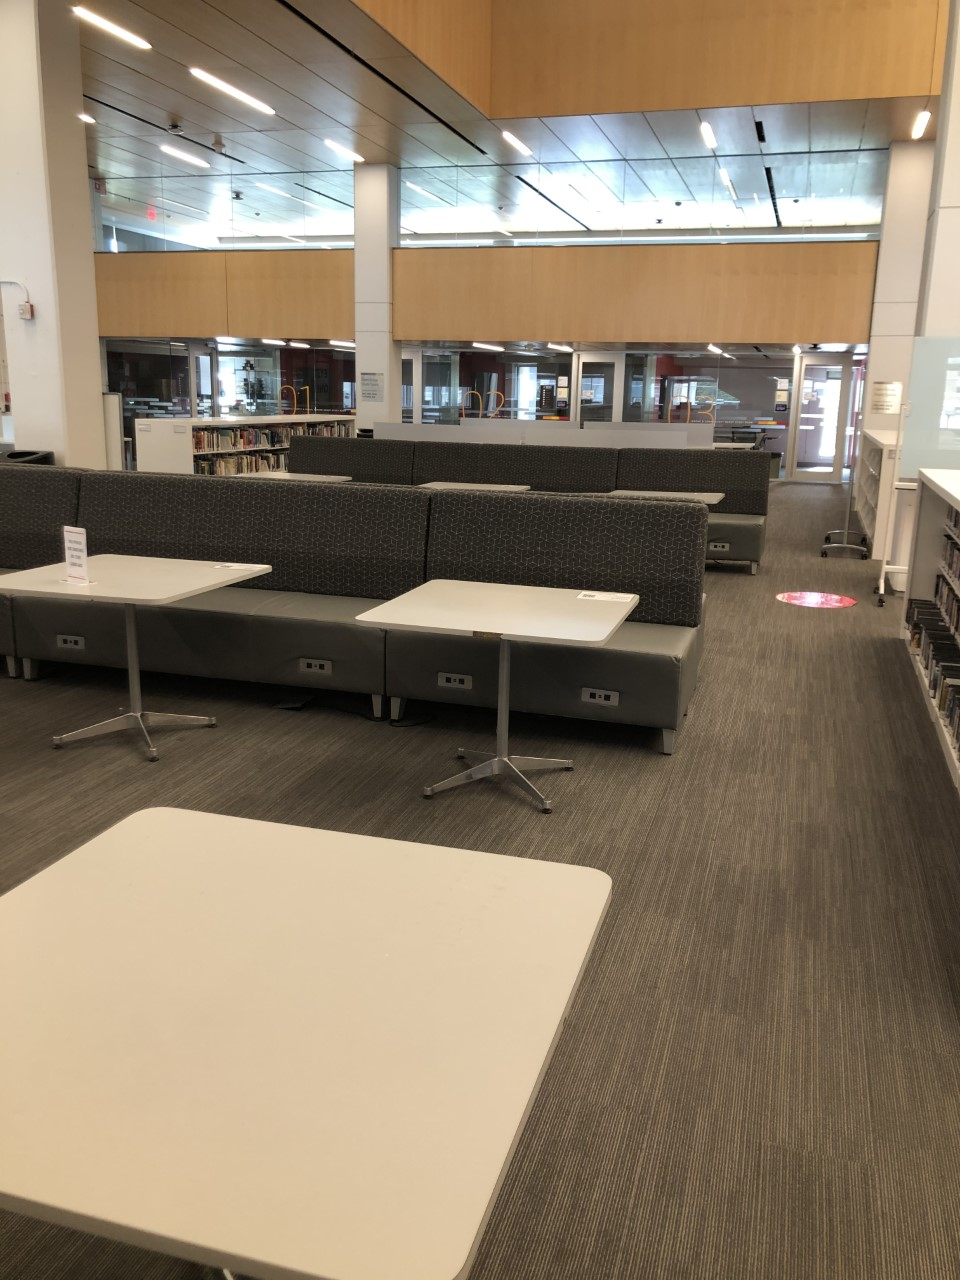 Library space; main floor middle area